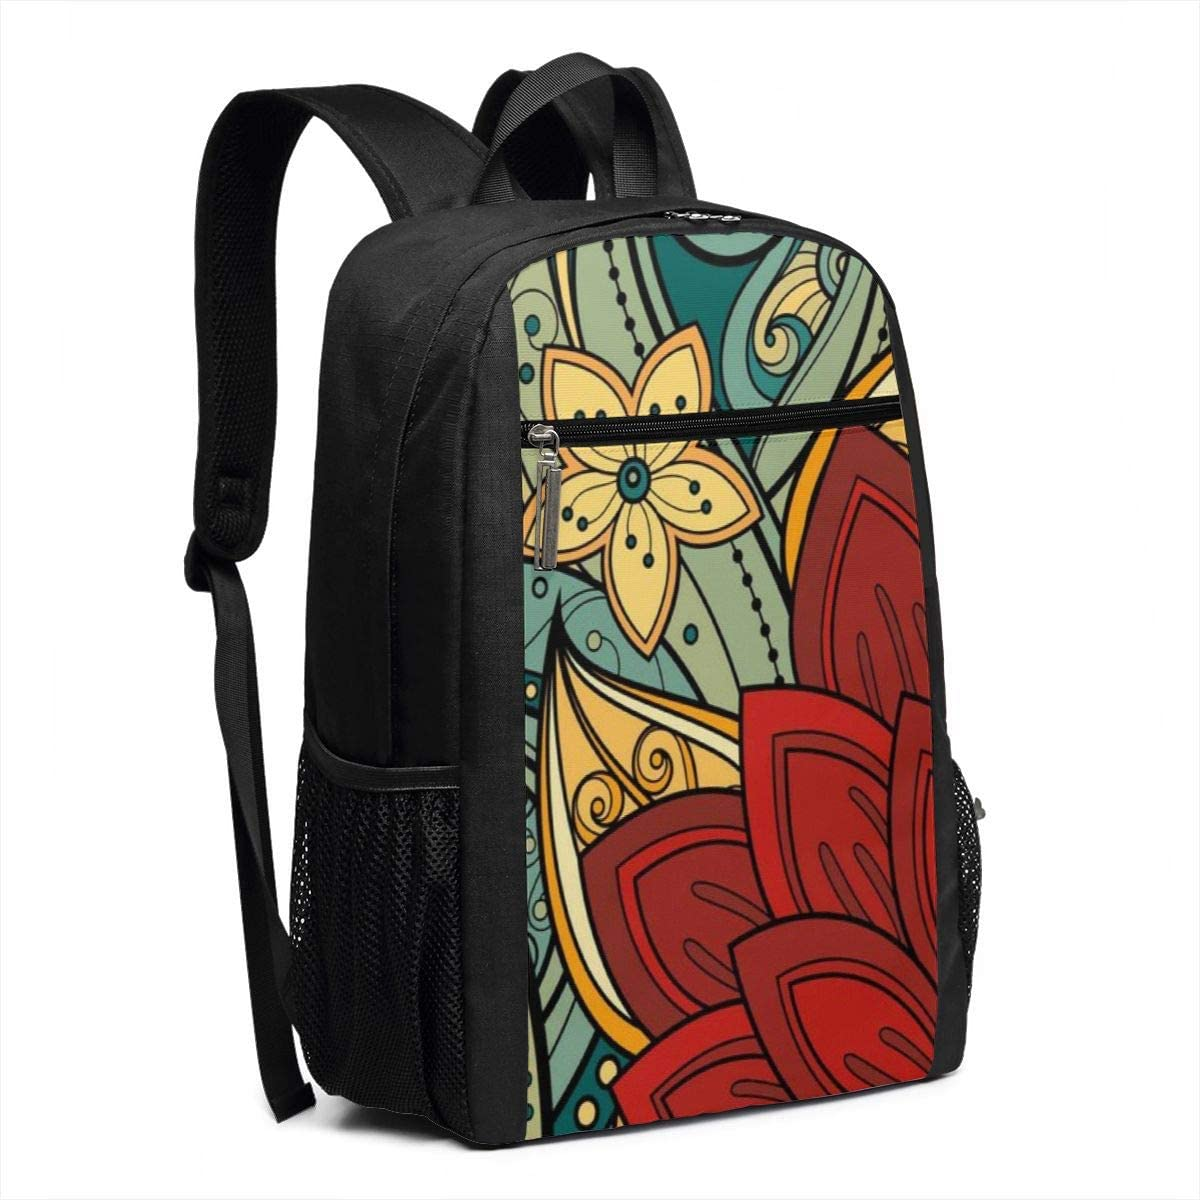 XTYND556 Flowers College Commuter Backpack Large Capacity Laptop Bag 17 Inch Travel Bag